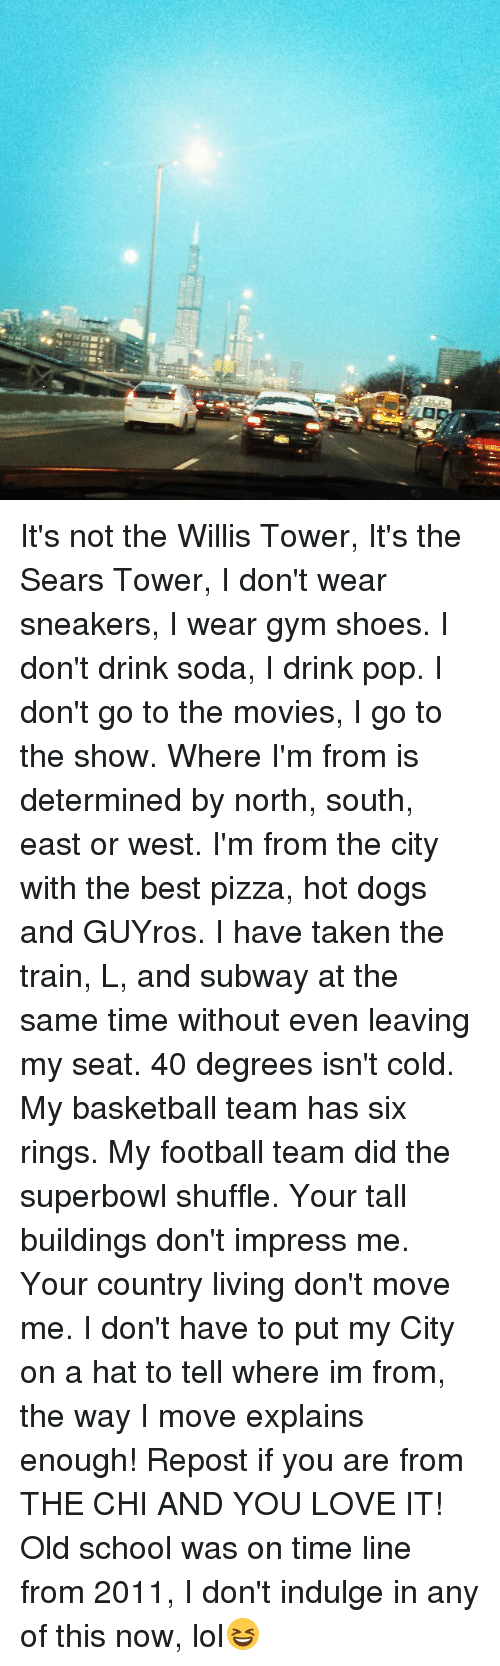 Memes, Pizza, and Pop: It's not the Willis Tower, It's the Sears Tower, I don't wear sneakers, I wear gym shoes. I don't drink soda, I drink pop. I don't go to the movies, I go to the show. Where I'm from is determined by north, south, east or west. I'm from the city with the best pizza, hot dogs and GUYros. I have taken the train, L, and subway at the same time without even leaving my seat. 40 degrees isn't cold. My basketball team has six rings. My football team did the superbowl shuffle. Your tall buildings don't impress me. Your country living don't move me. I don't have to put my City on a hat to tell where im from, the way I move explains enough! Repost if you are from THE CHI AND YOU LOVE IT! Old school was on time line from 2011, I don't indulge in any of this now, lol😆